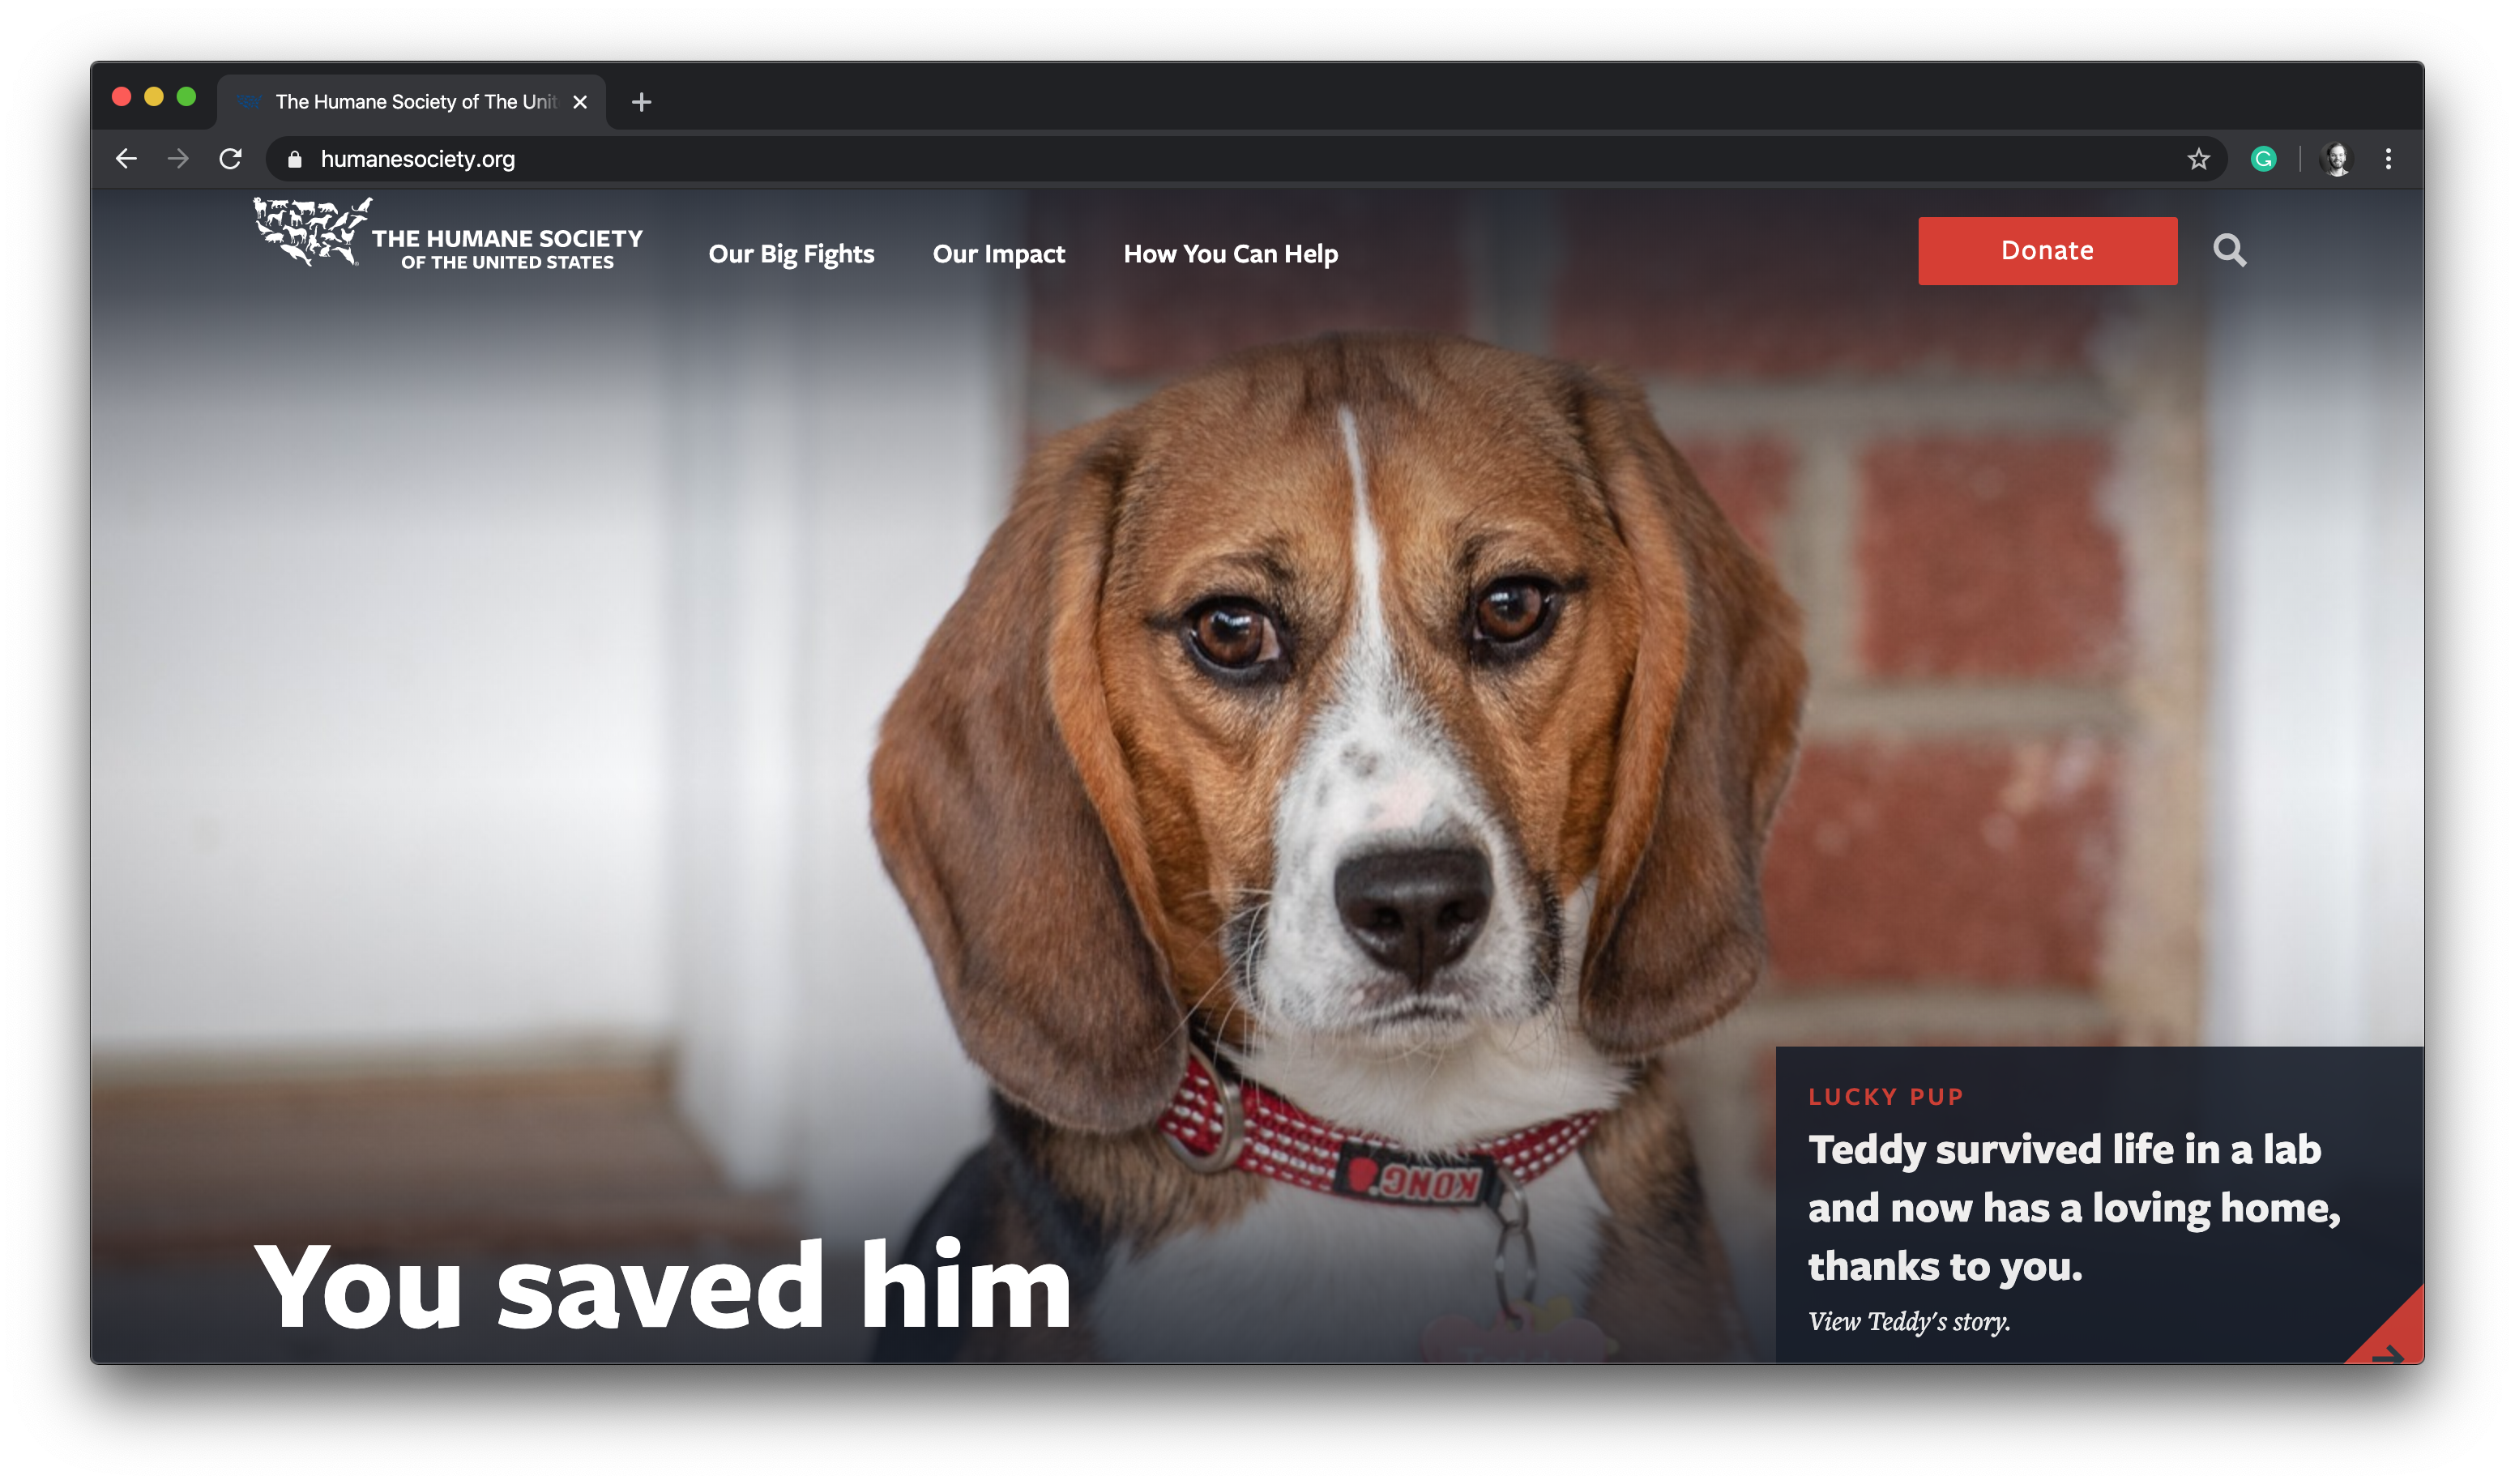 humane society of the united states website homepage screenshot teddy